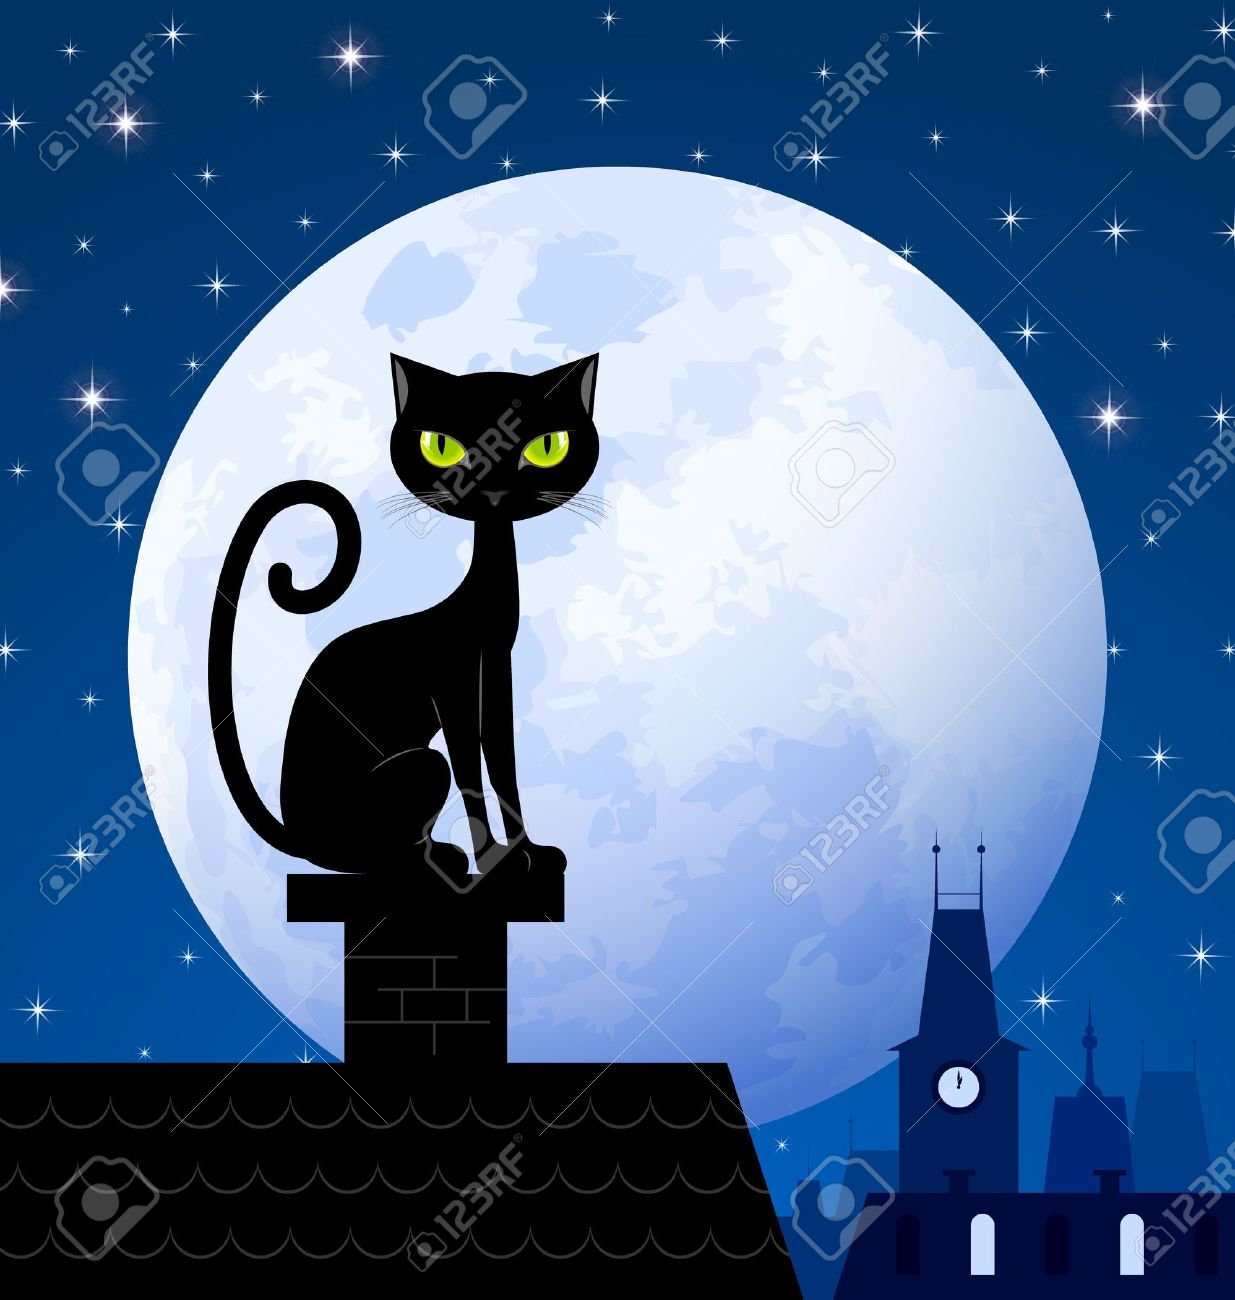 Black cat on chimney with moon town and starry night in the background Stock Vector - 15191583